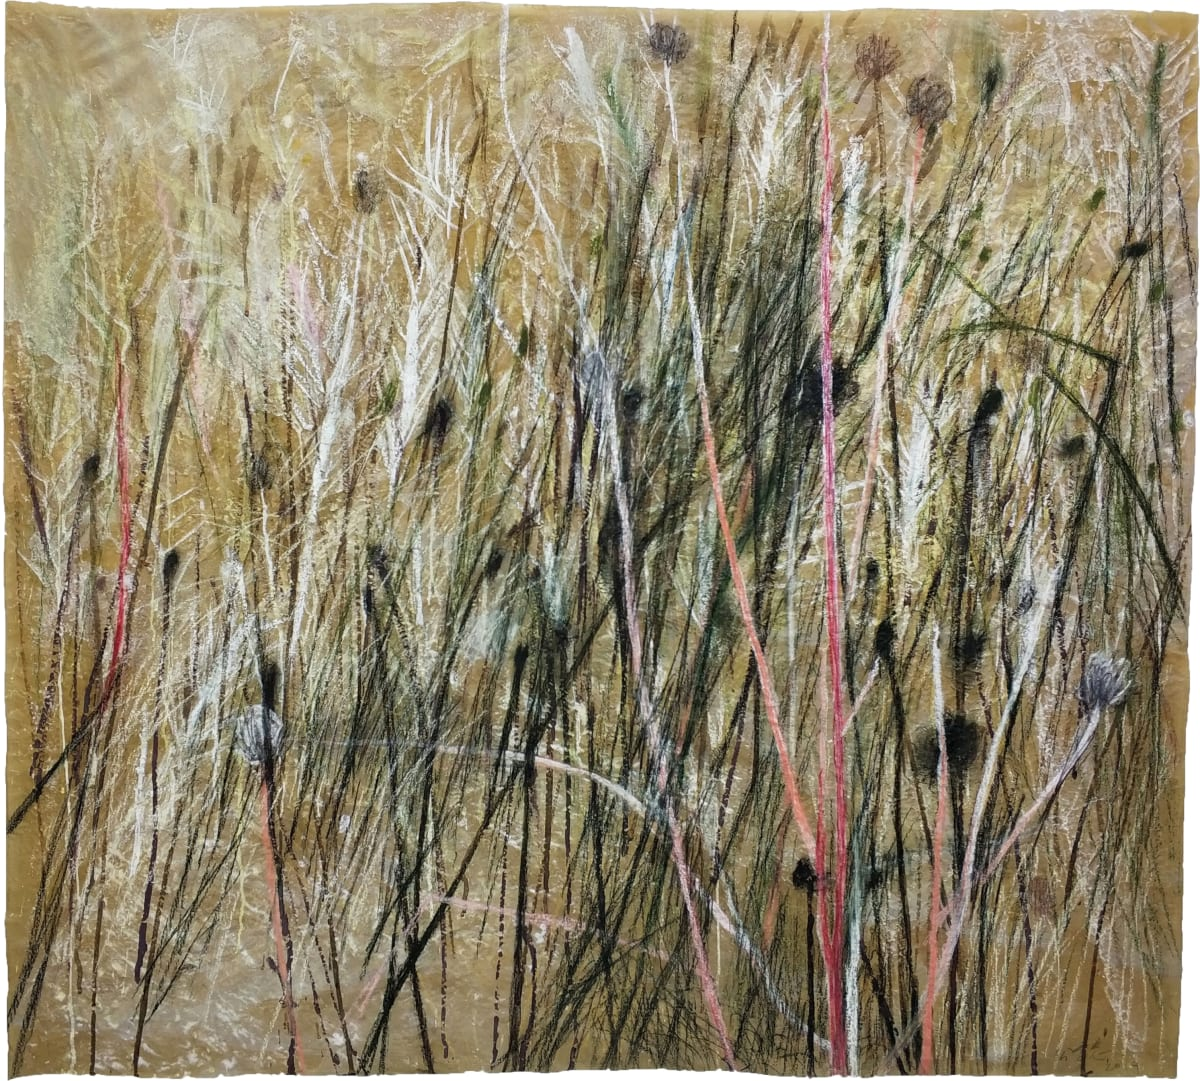 Wang Gongyi 王公懿, Leaves of Grass No.7 草葉集之七, 2019